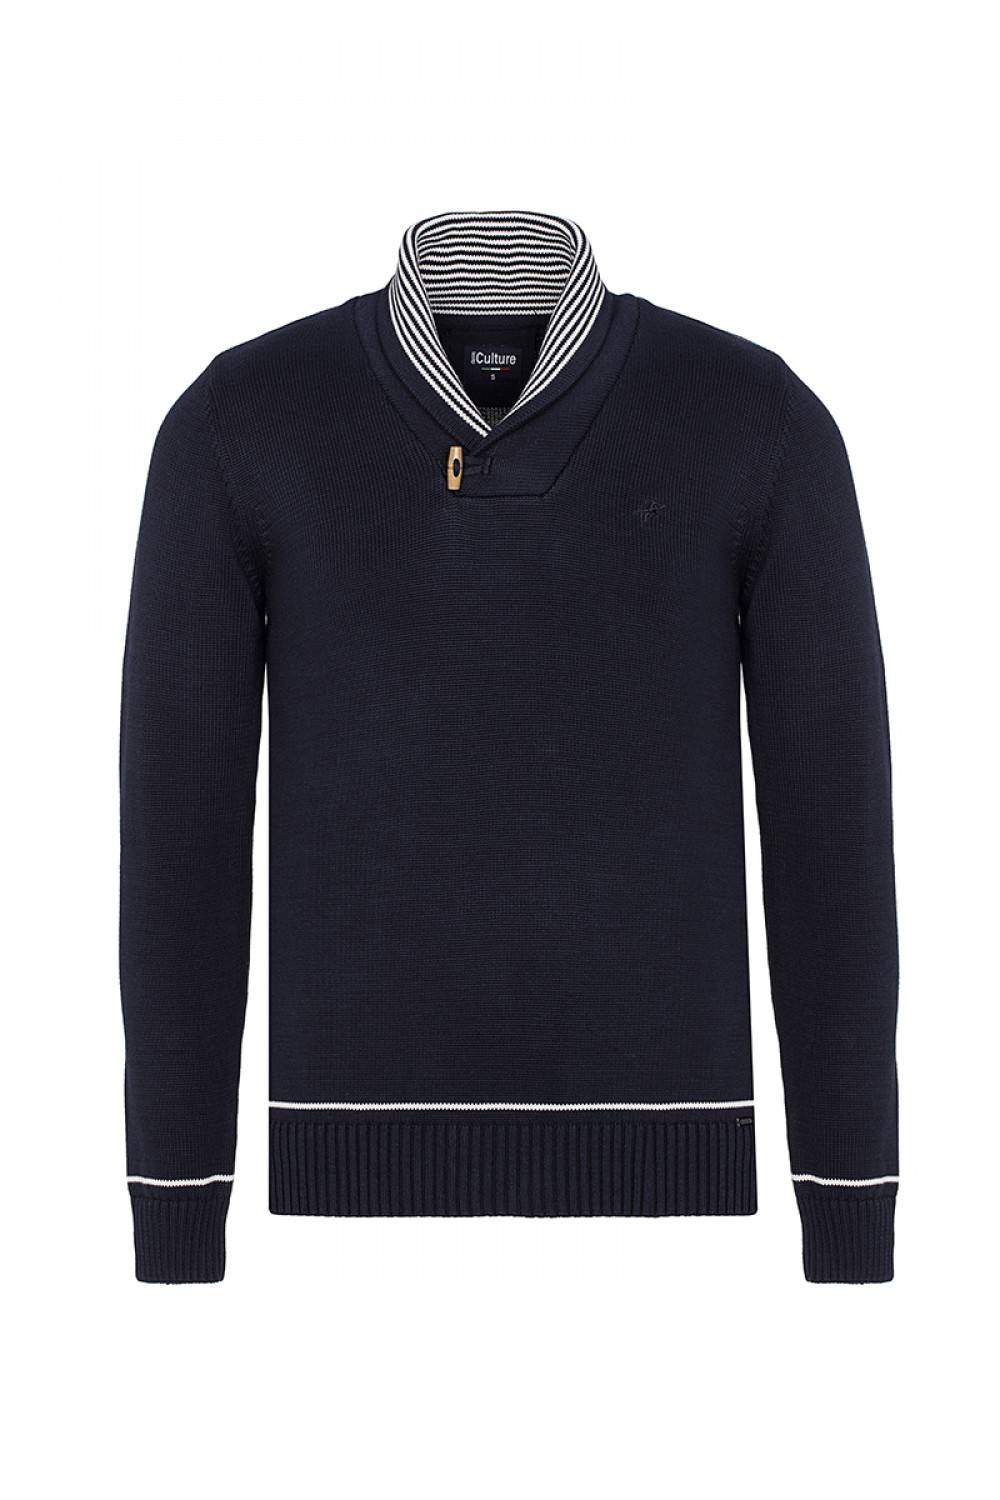 Men's Pullover  Shawl Collar Navy Cotton